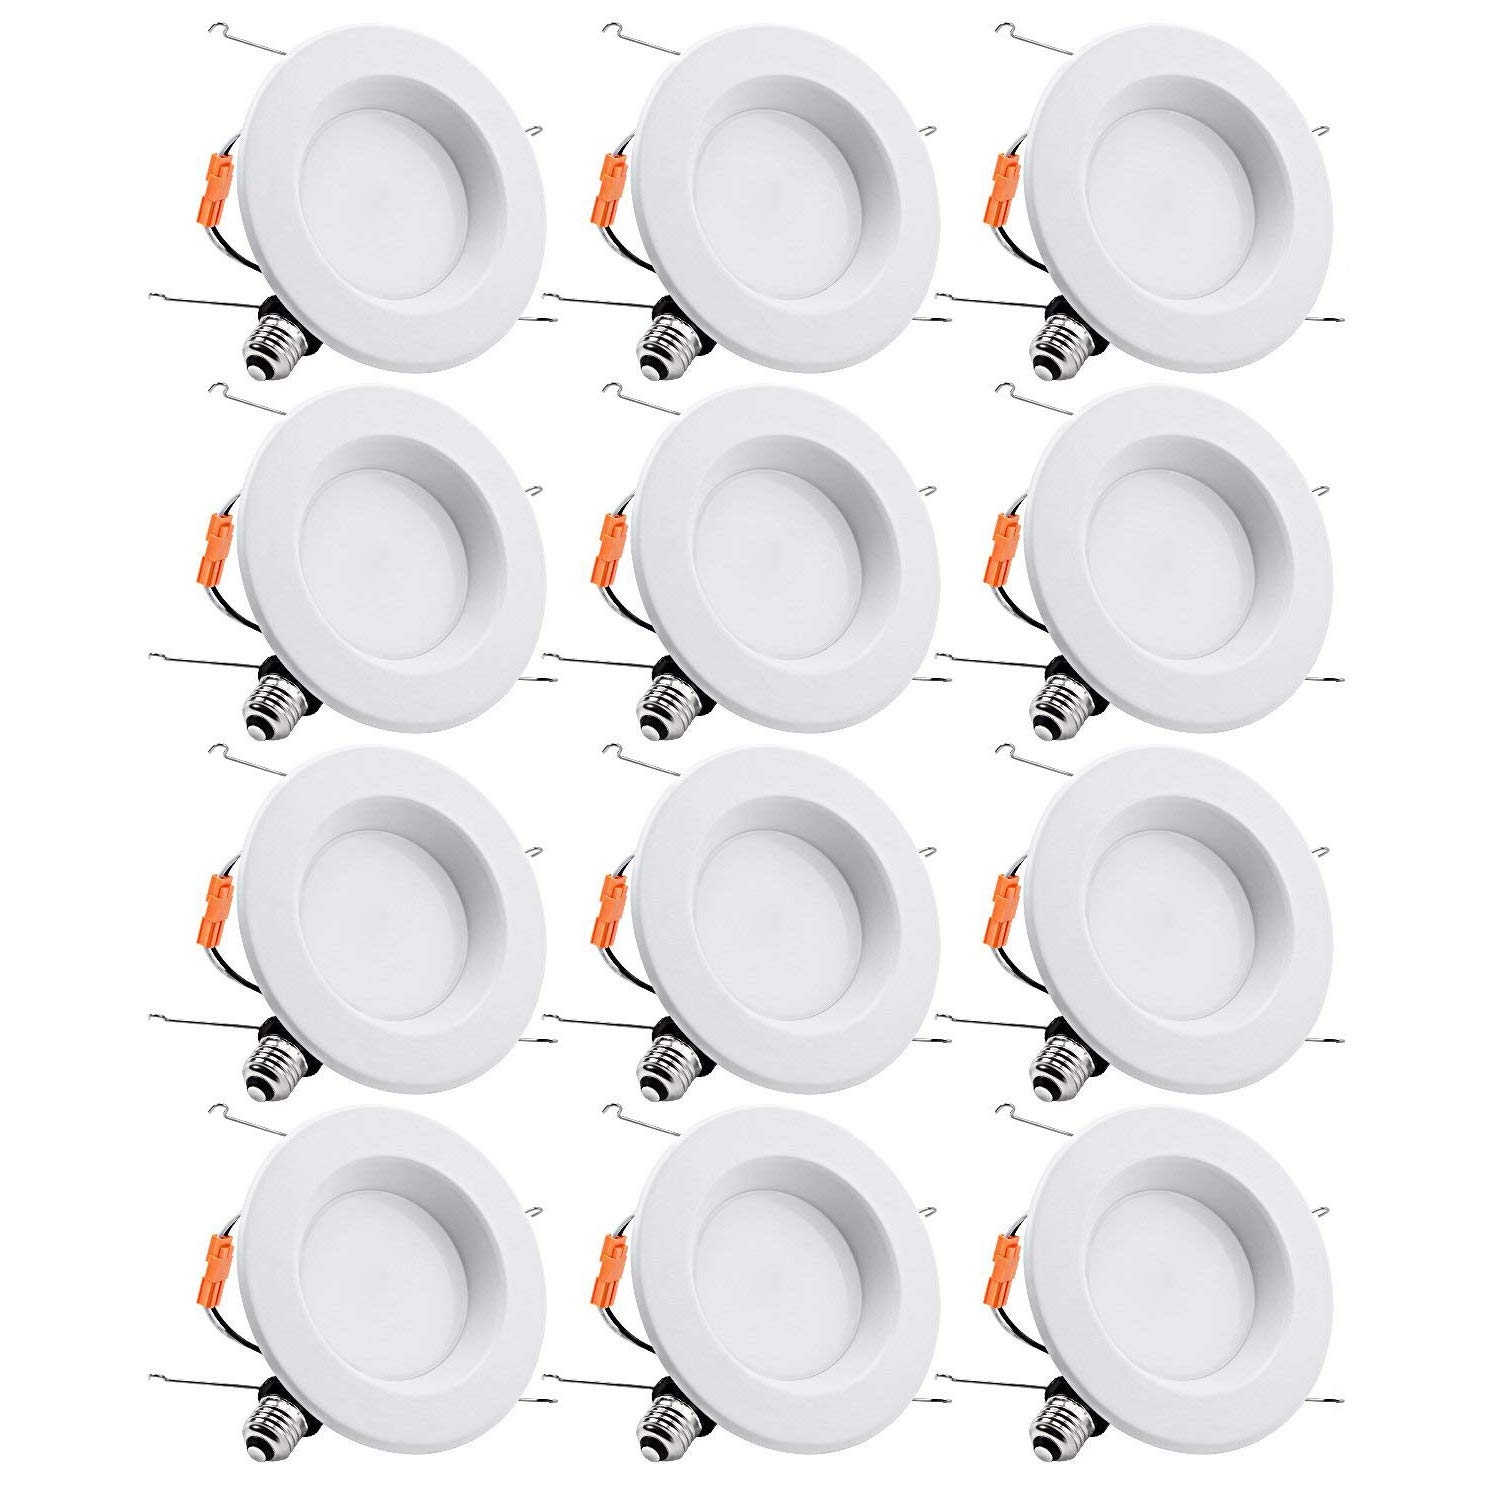 TORCHSTAR 15W 6inch Wet Location CRI90+ Dimmable 90W Equivalent Retrofit LED Recessed Lighting Fixture, Energy Star & ETL Classified Ceiling Light, 5000K Daylight 1250lm Remodel Downlight, 12-Pack